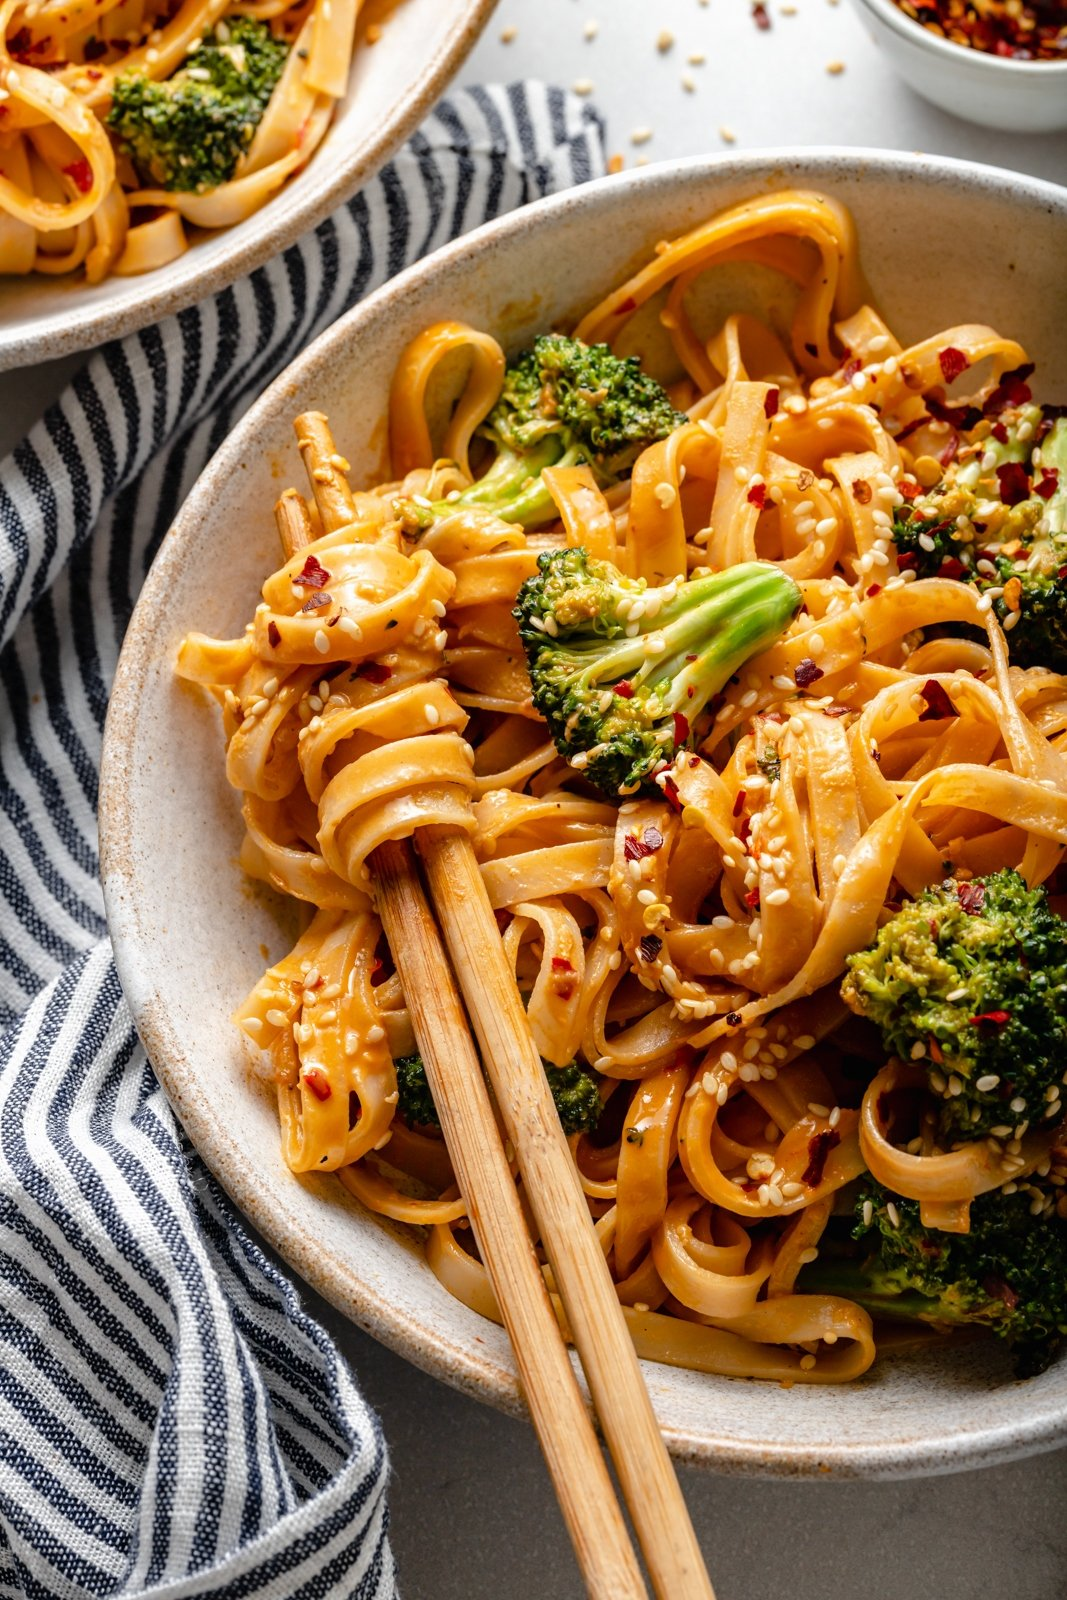 sweet and spicy tahini noodles with broccoli in a bowl